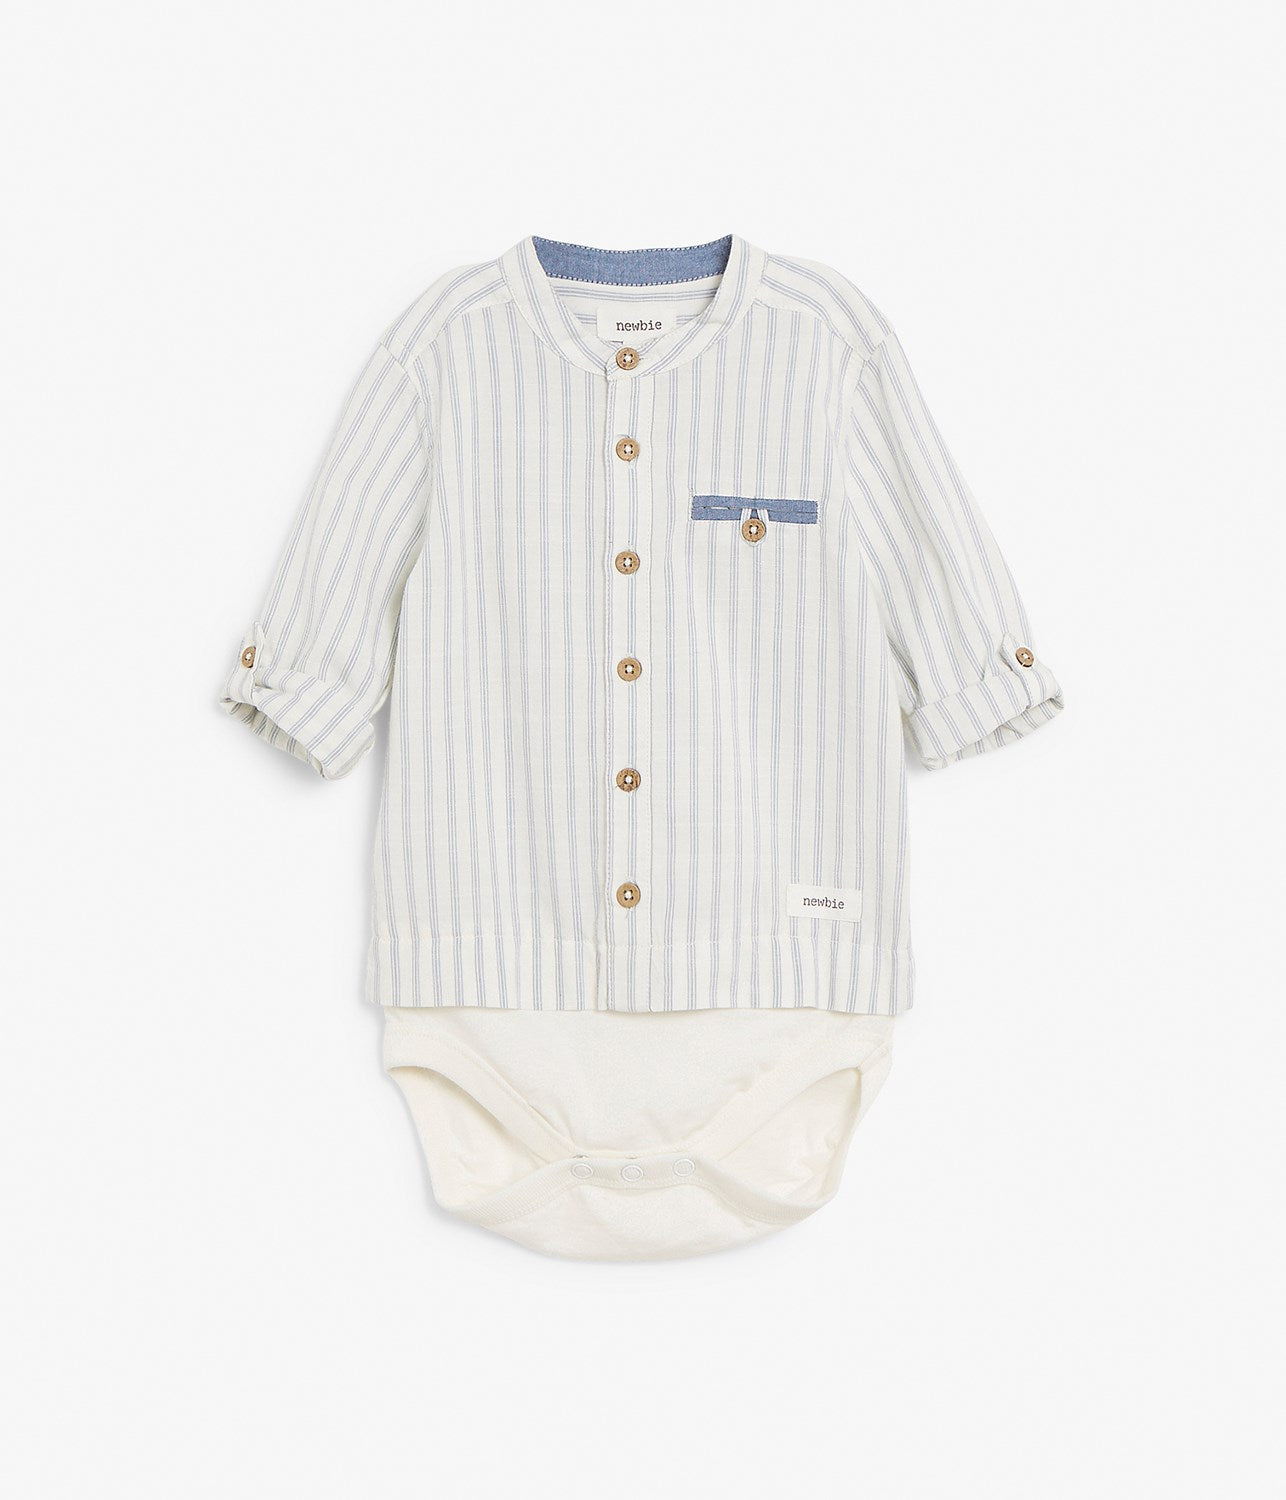 Baby blue striped shirt with body